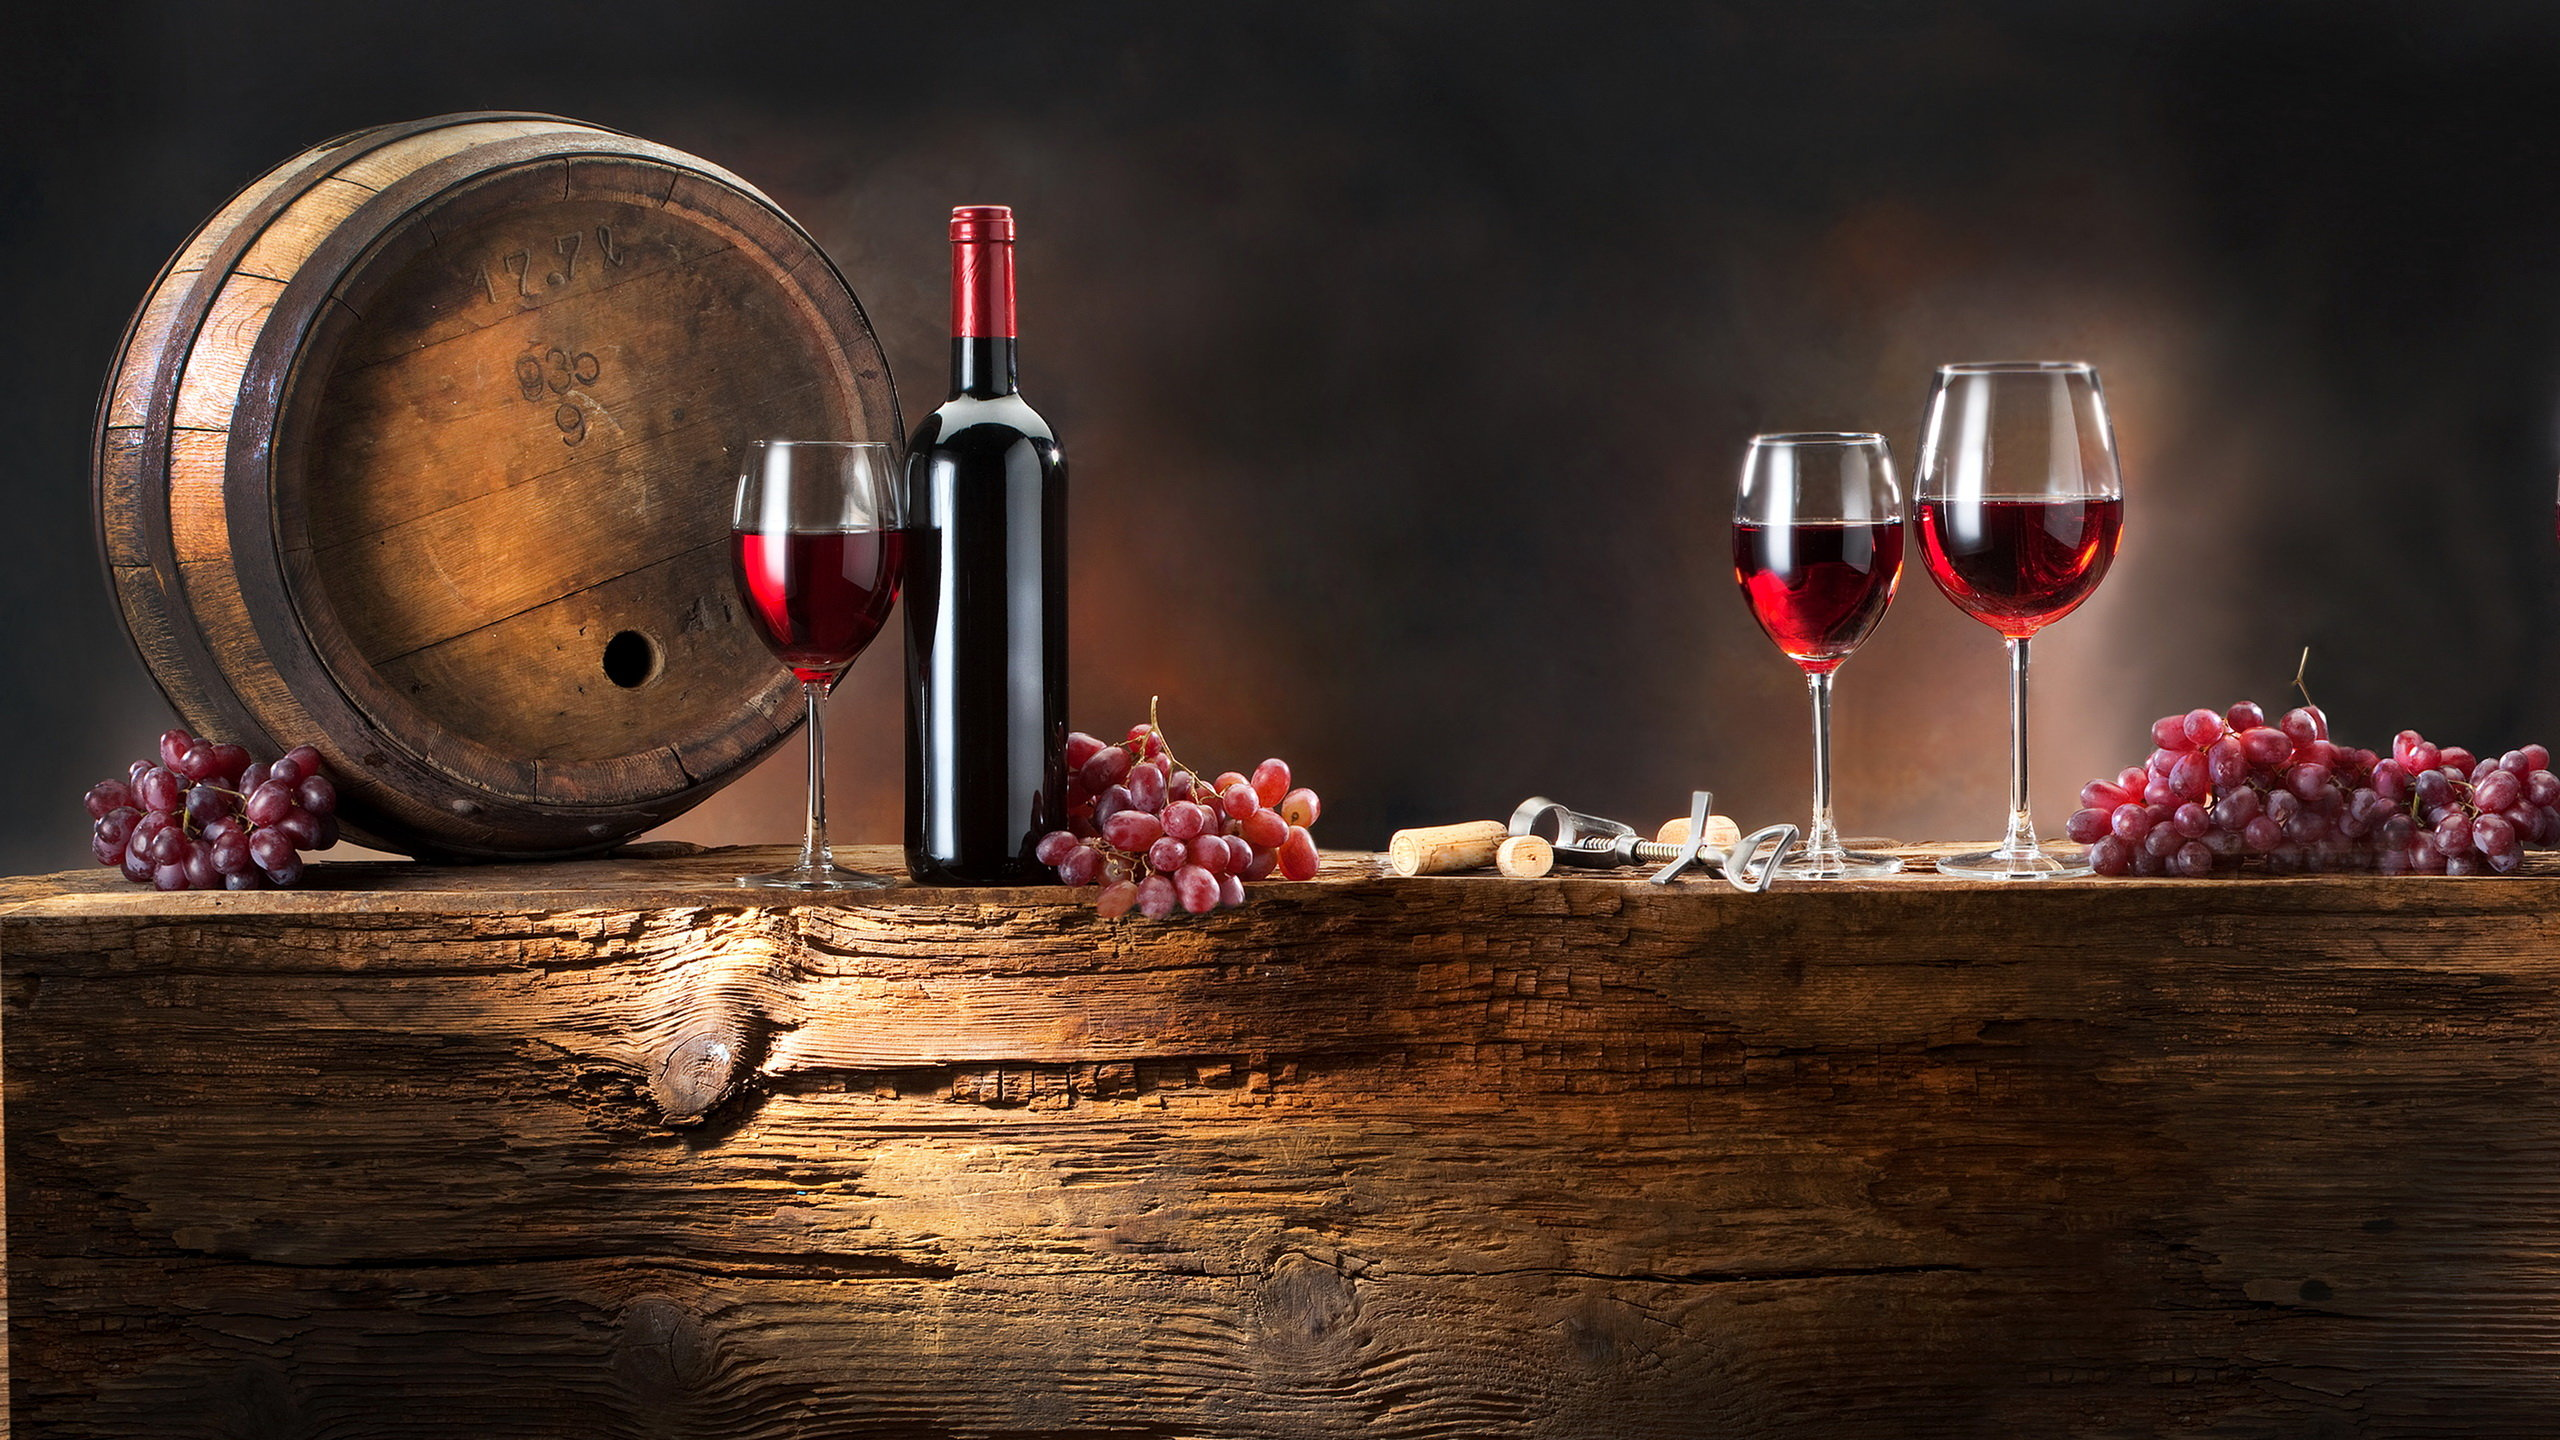 Free Wine high quality wallpaper ID:71051 for hd 2560x1440 PC